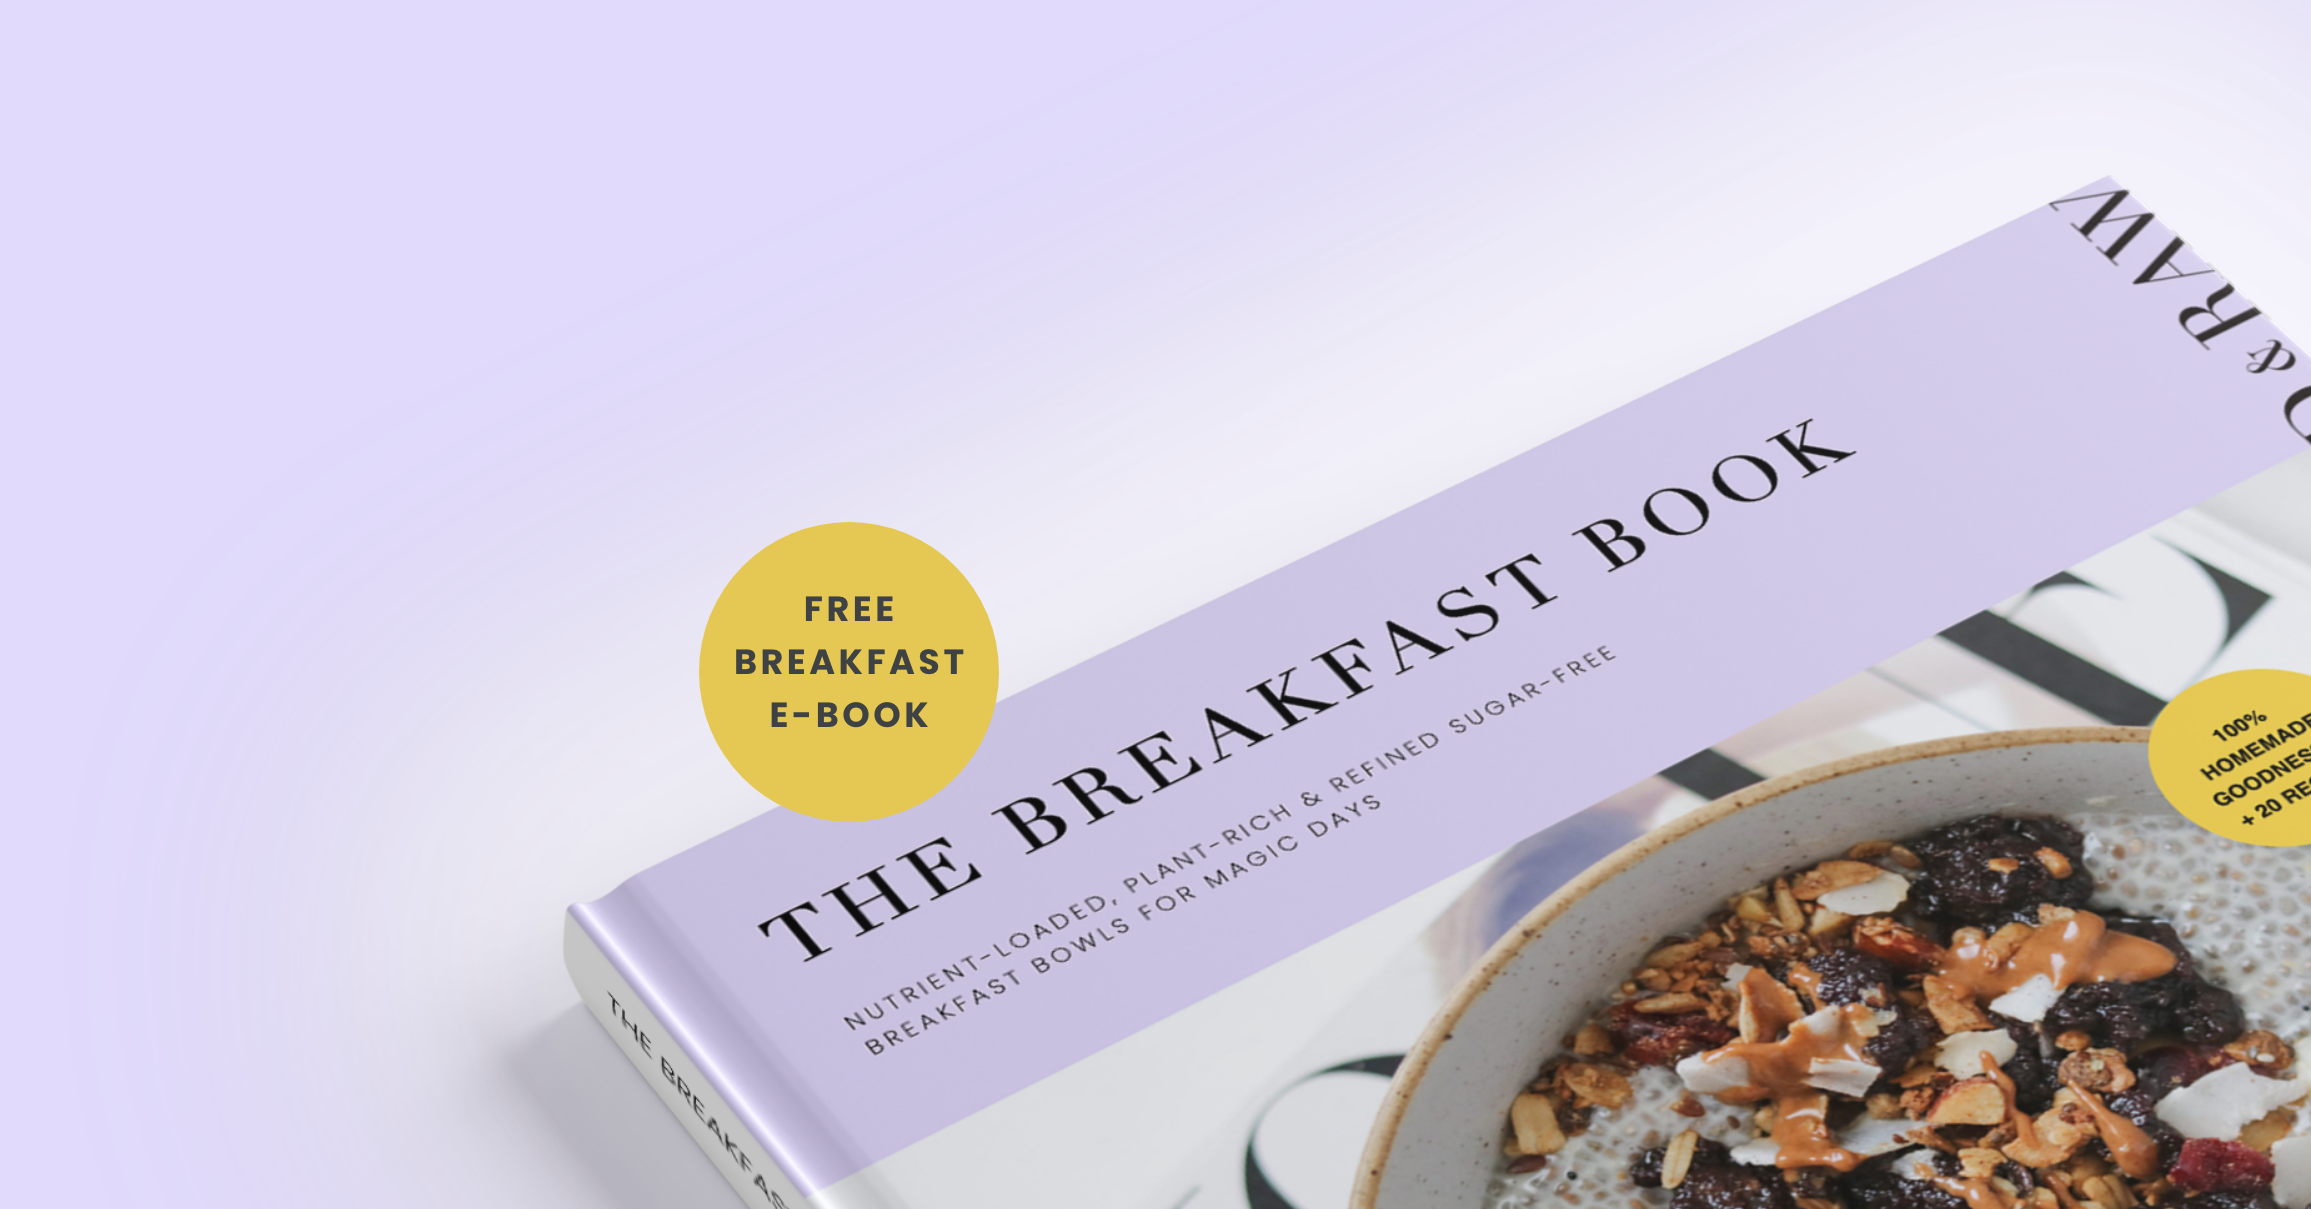 Homemade, nutrient-loaded & refined sugar-free e-book with over 20 recipes